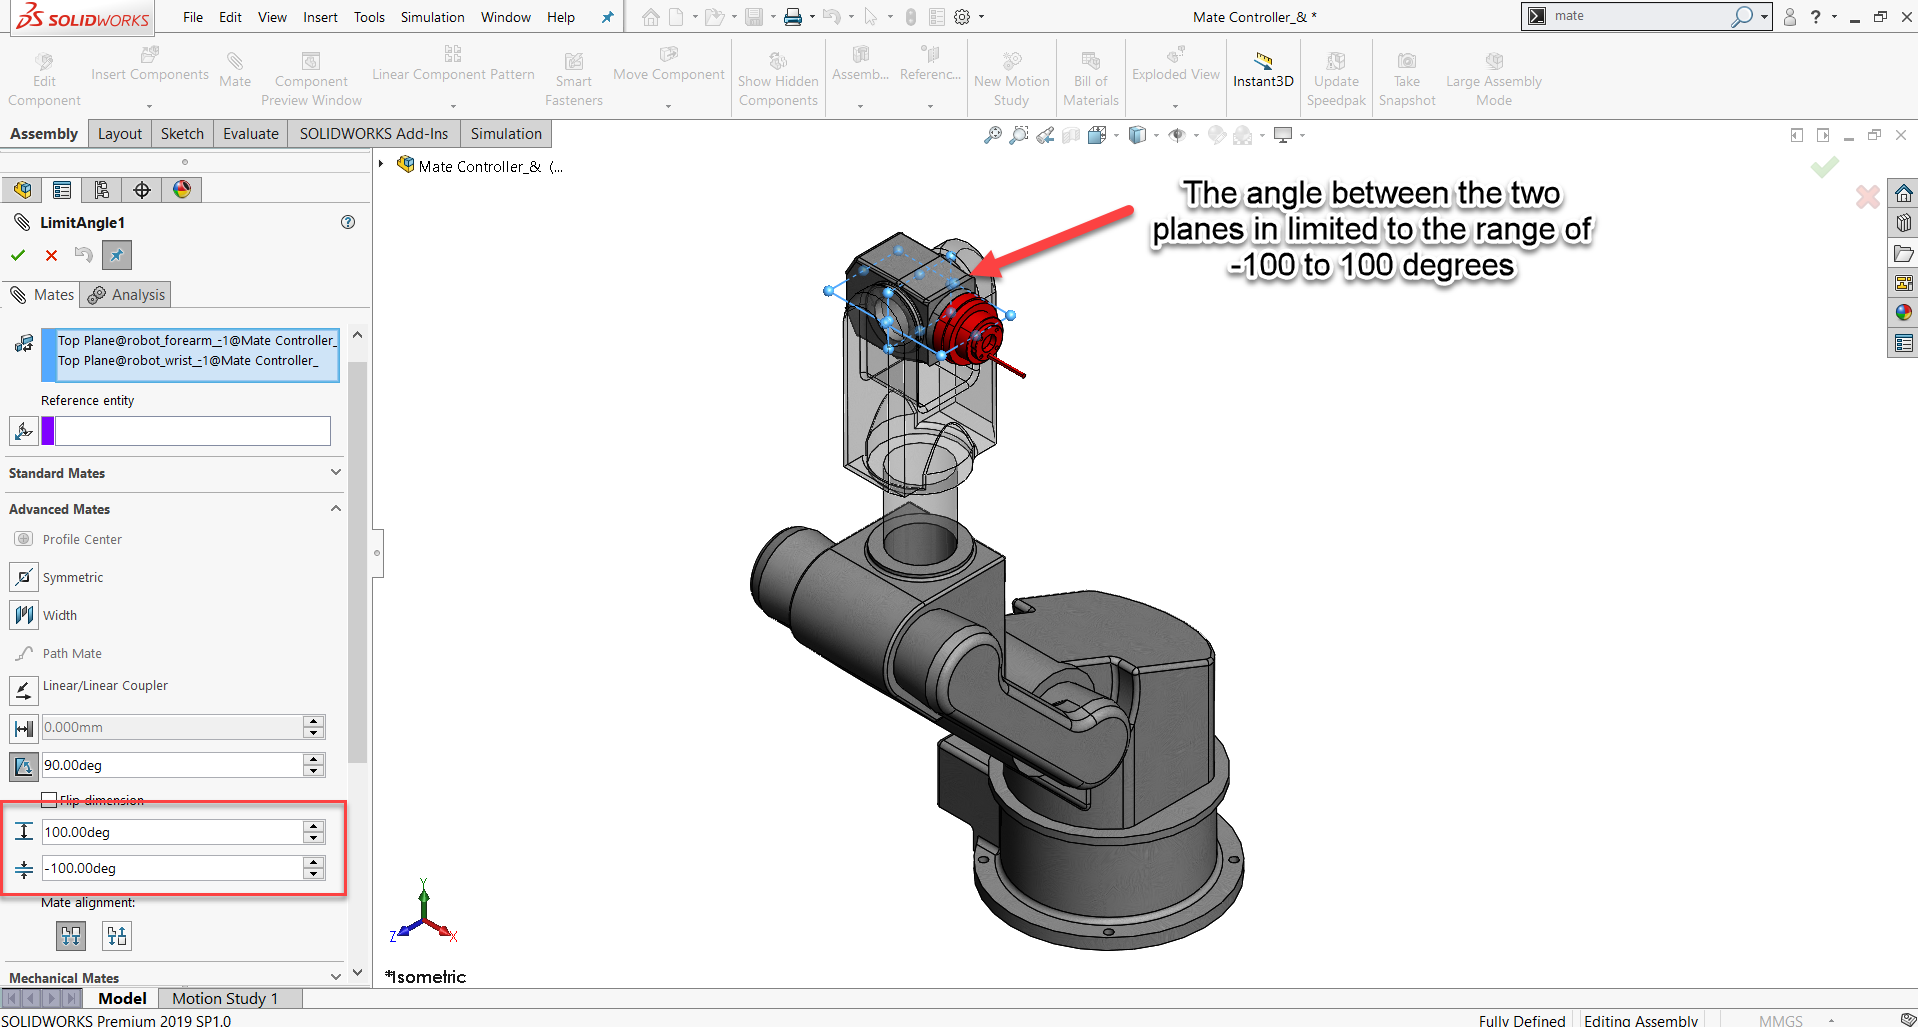 SOLIDWORKS 2019 Hardware FAQs and Recommendations